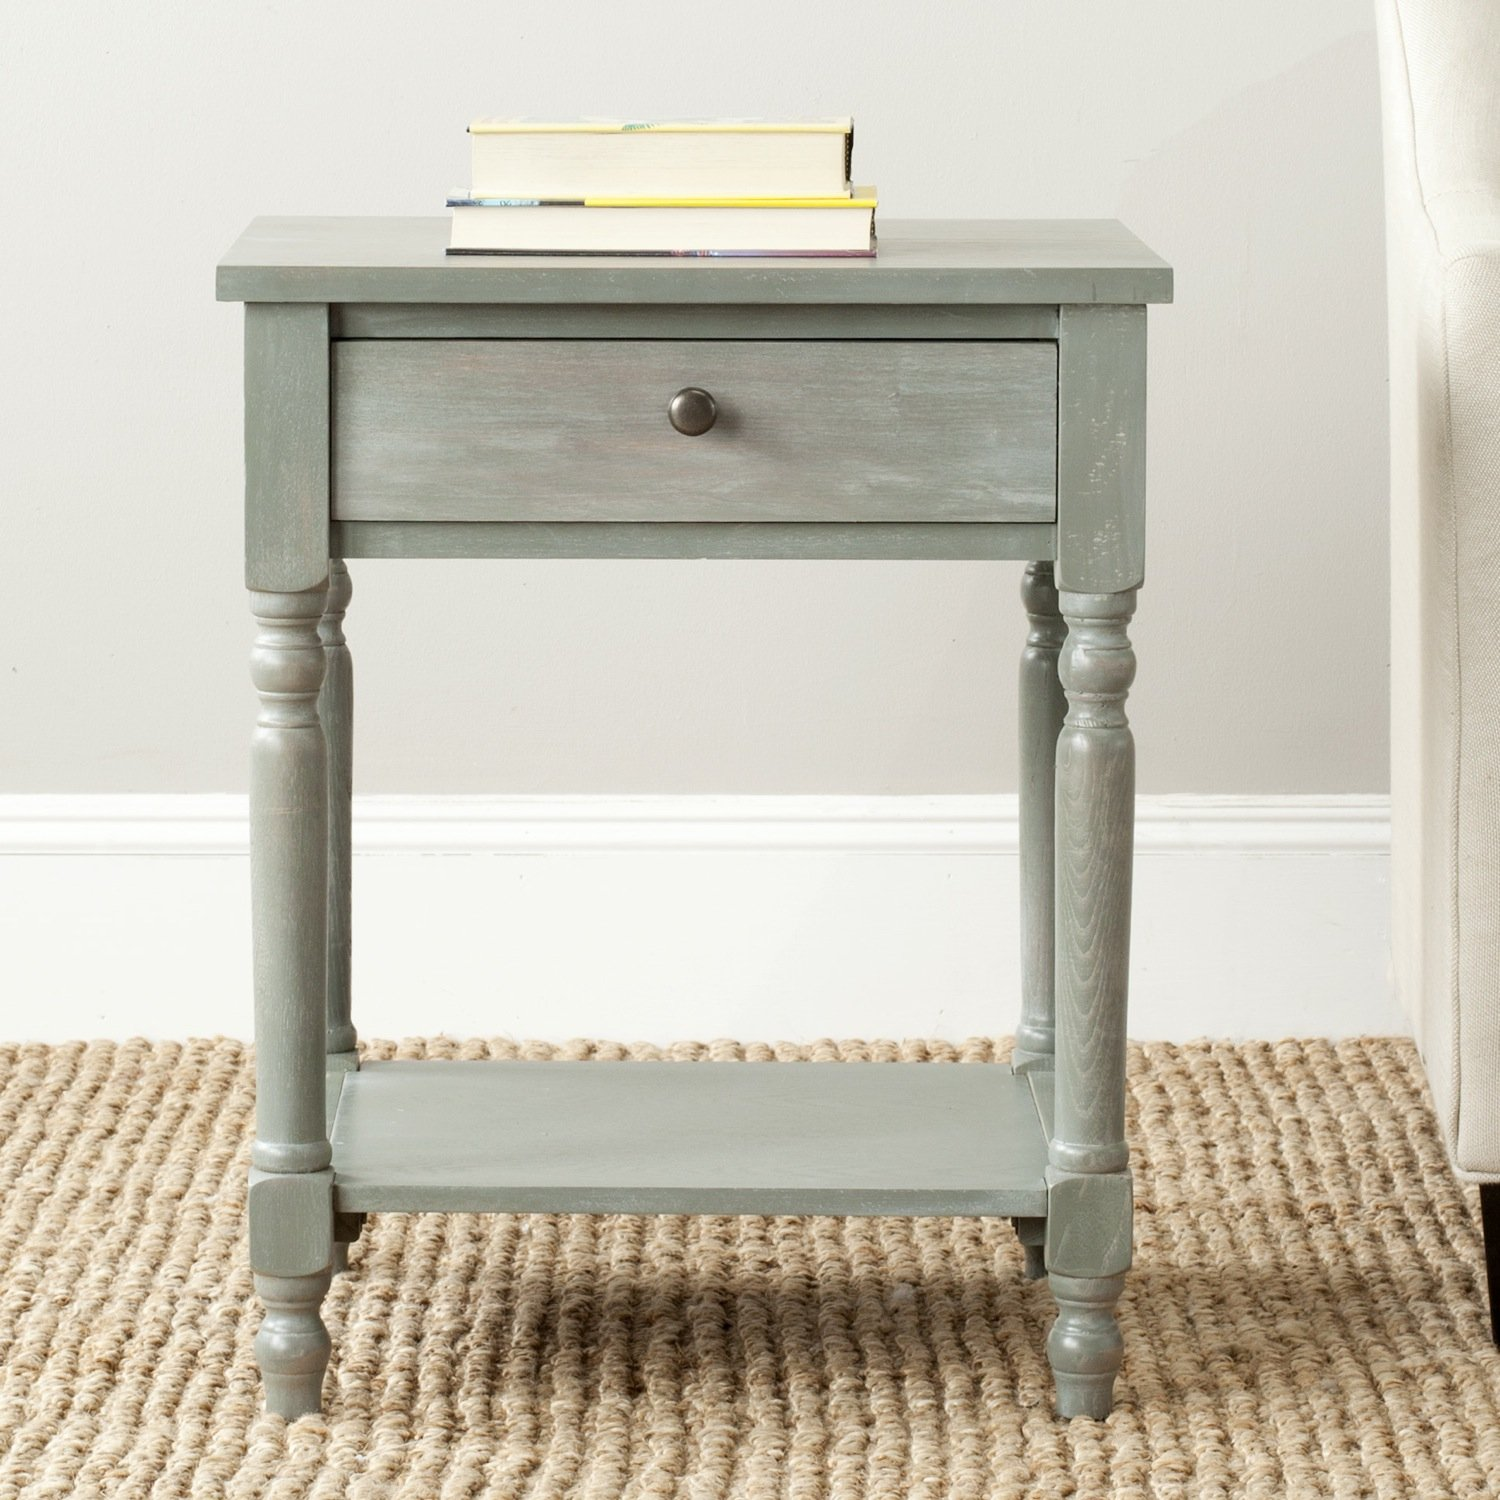 safavieh american homes collection tami ash grey accent table marble and glass blue tiffany lamp hallway chest furniture legs bungee chair target elegant linens antique buffet